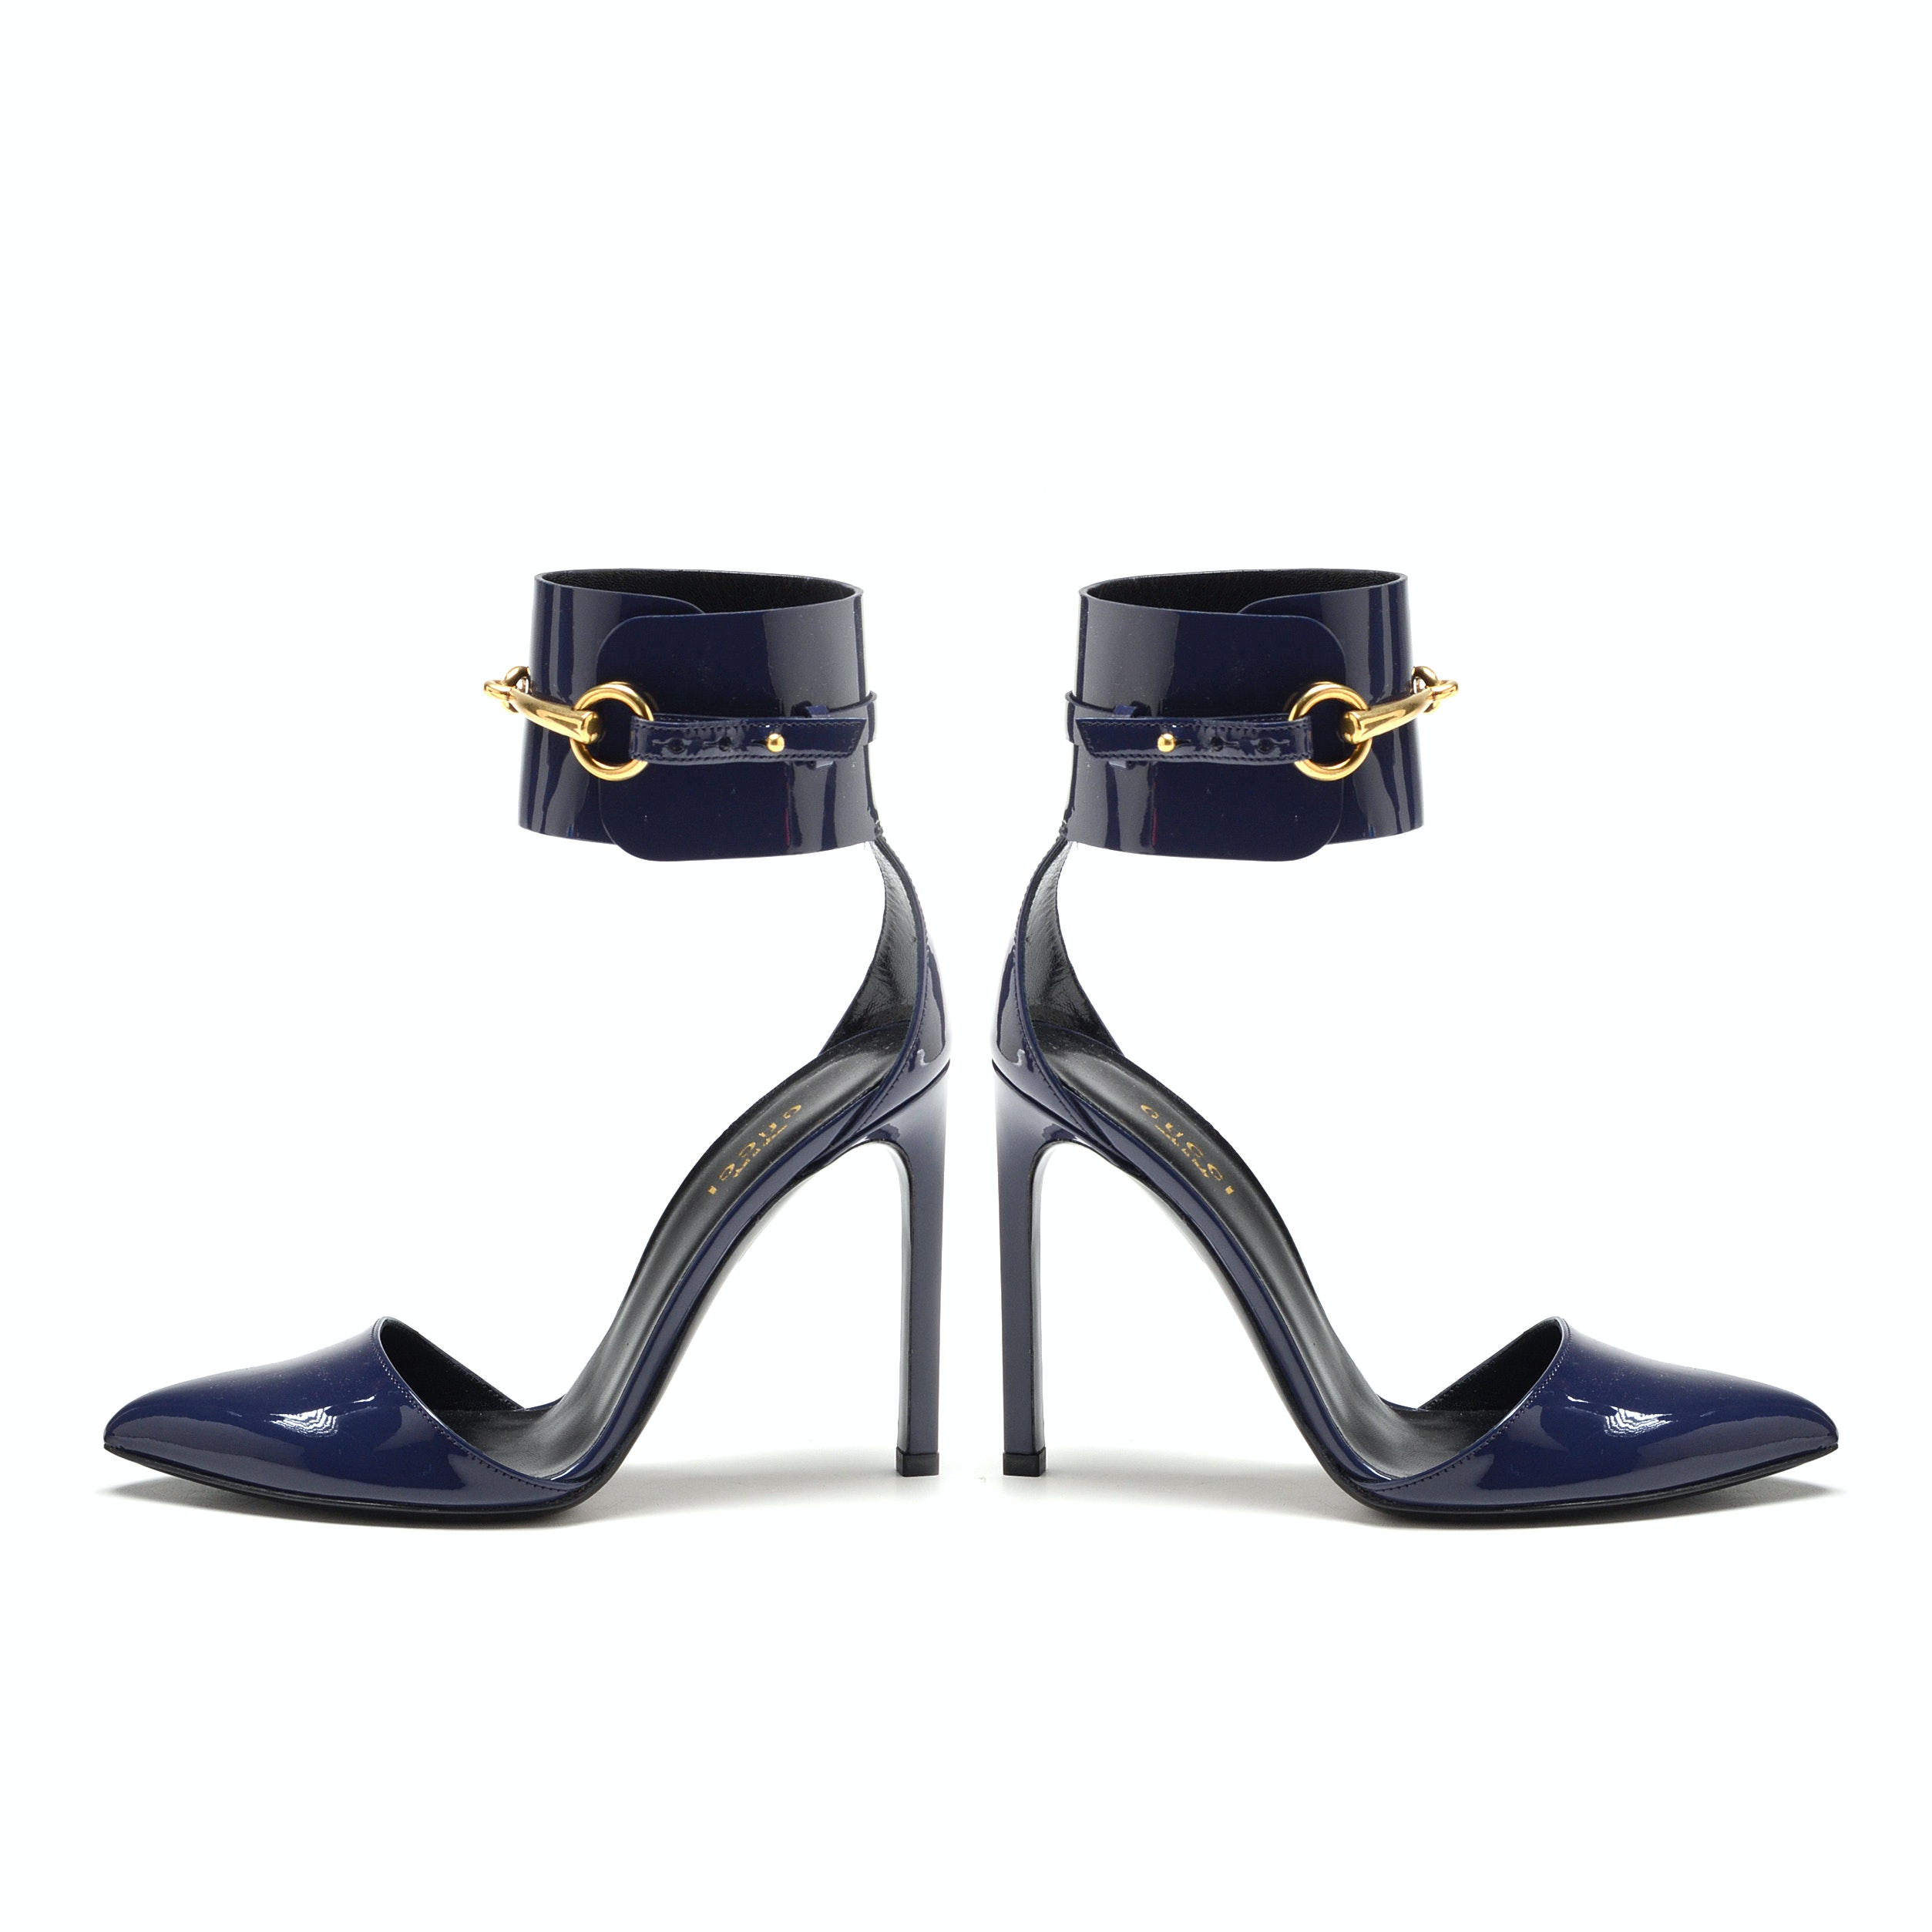 Gucci Crystal Classic Marine Blue Patent Leather Stiletto Pumps